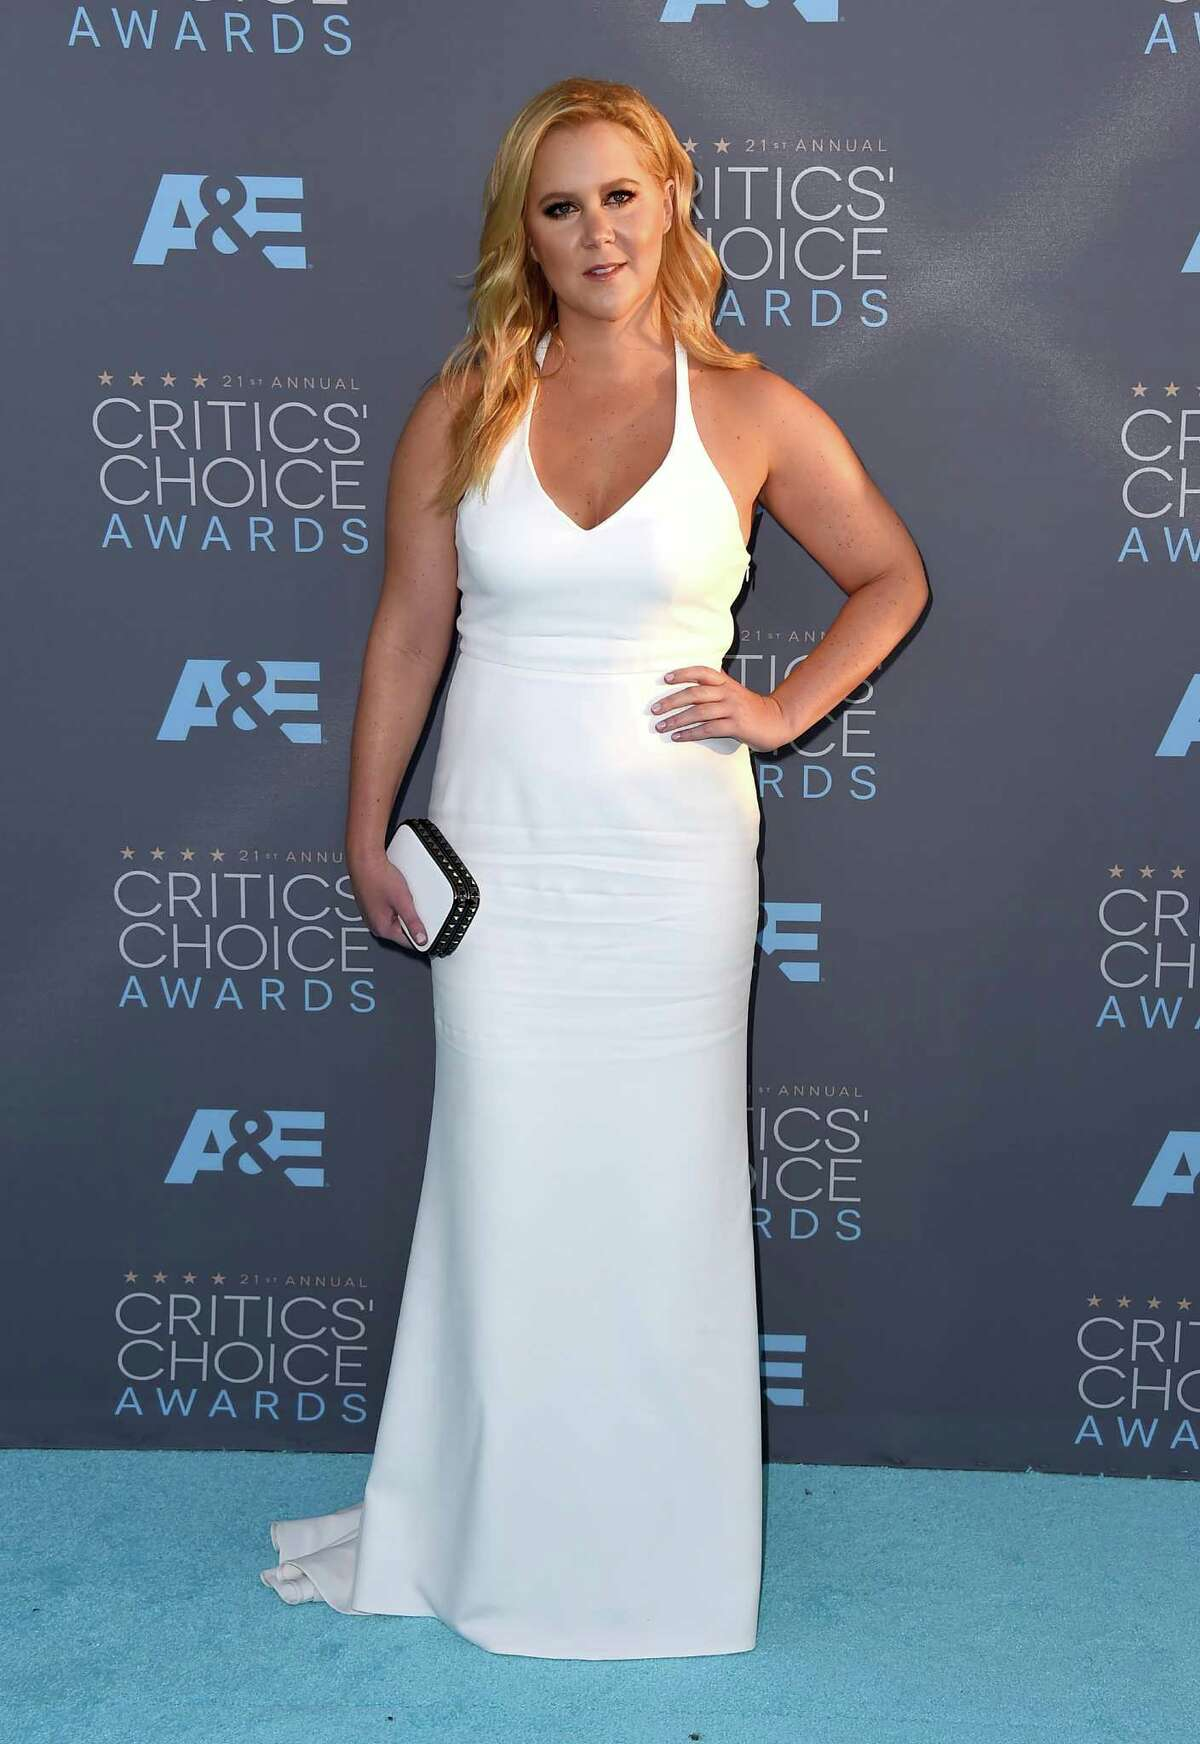 Amy Schumer arrives at the 21st annual Critics' Choice Awards at the Barker Hangar on Sunday, Jan. 17, 2016, in Santa Monica, Calif. (Photo by Jordan Strauss/Invision/AP) ORG XMIT: CACJ169